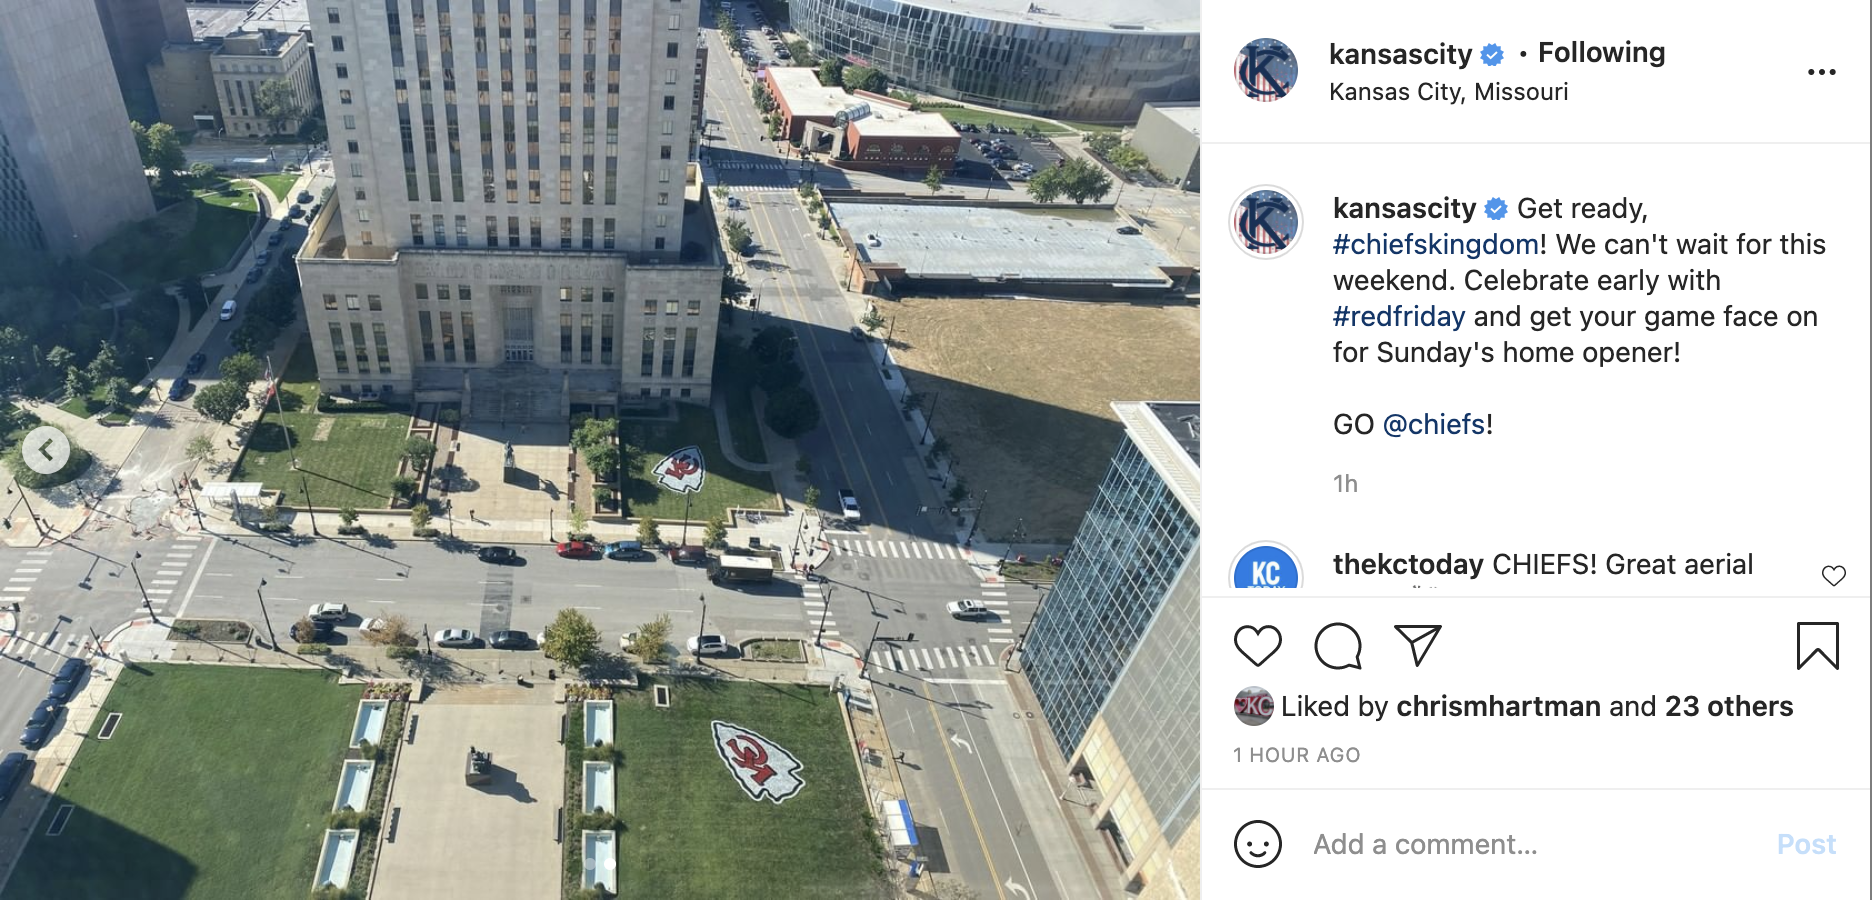 An aerial view of two Chiefs arrowheads painted on grassy areas in downtown Kansas City.